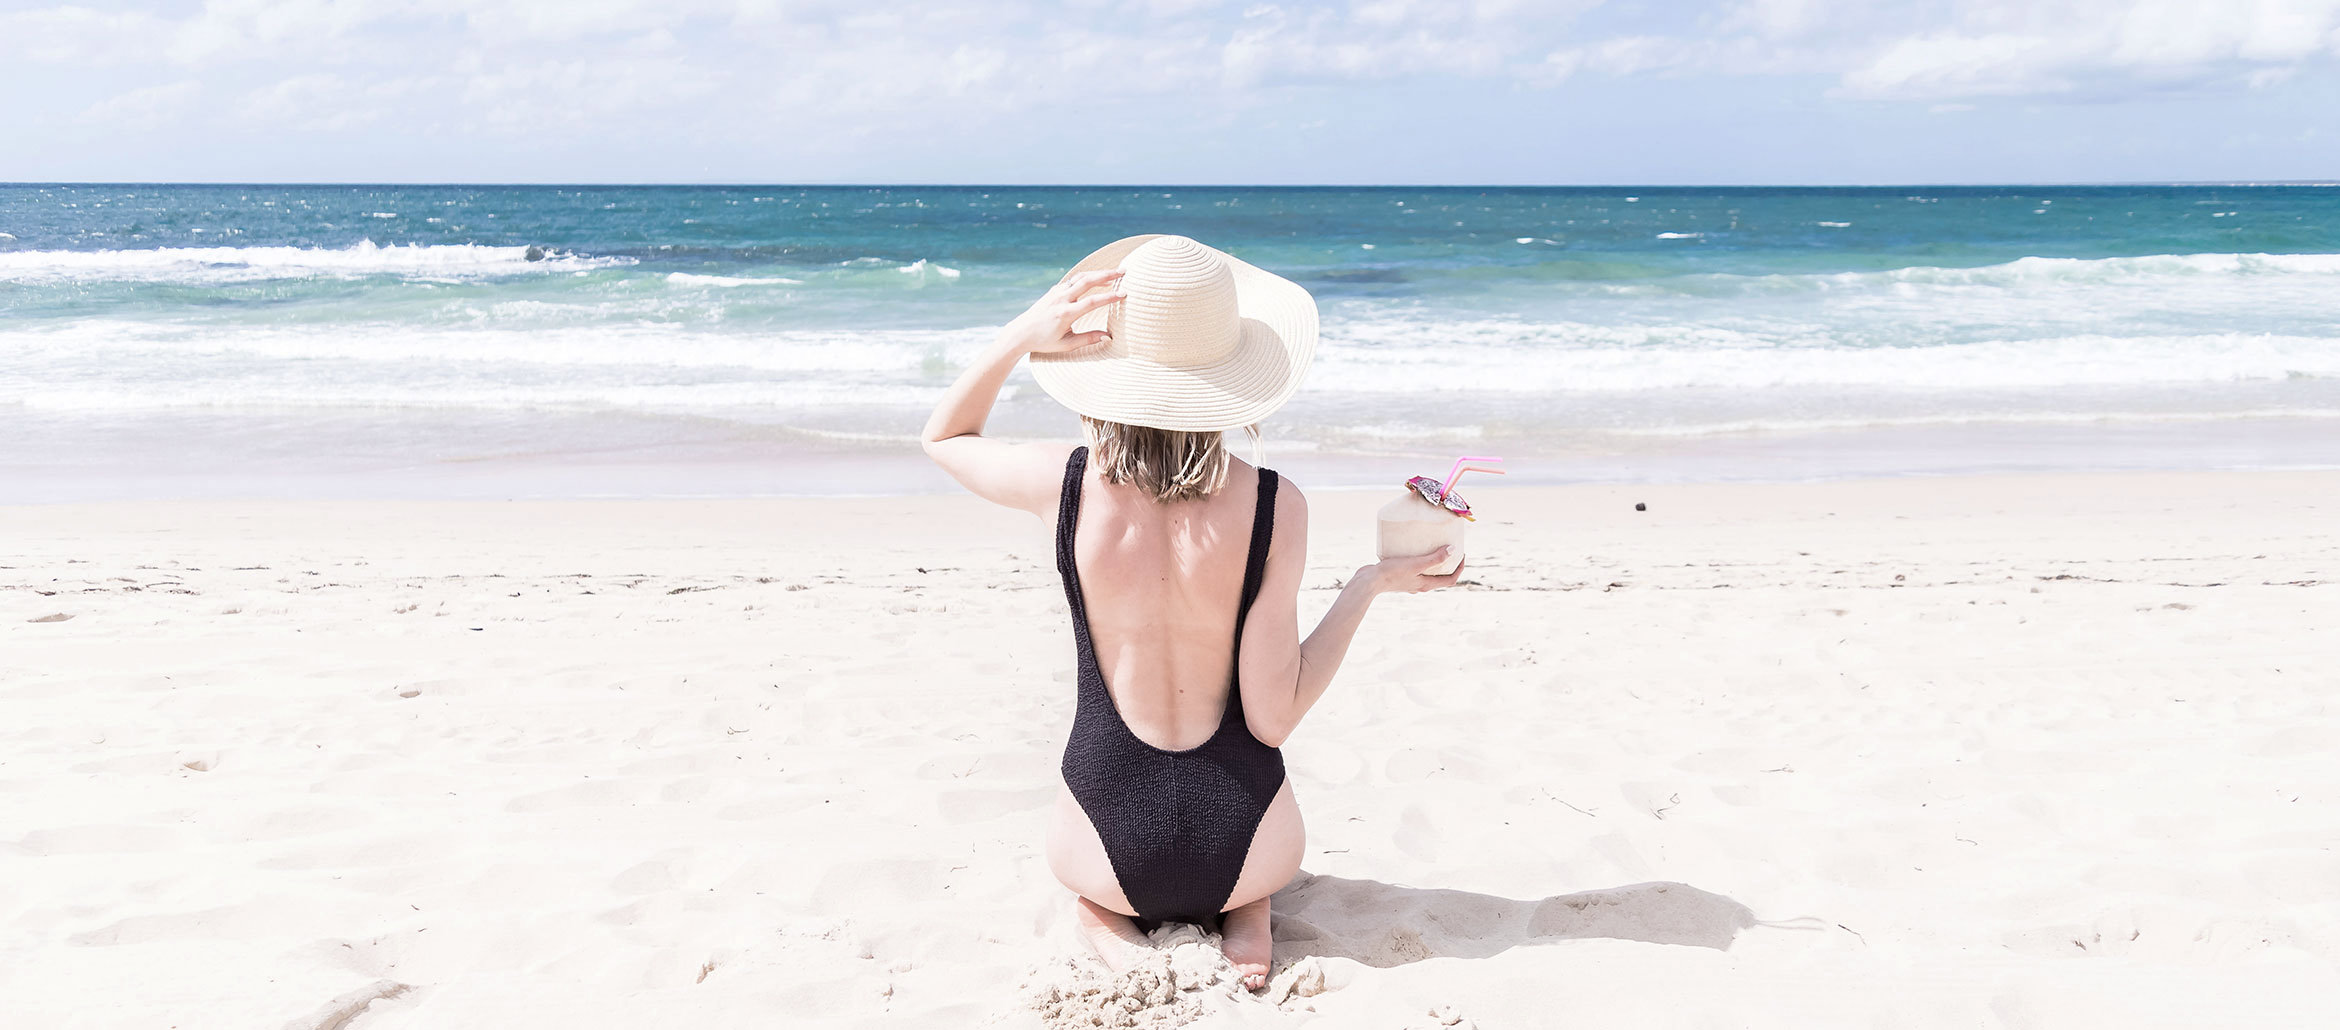 The 5 unbelievably relaxed gold coast beaches that locals love